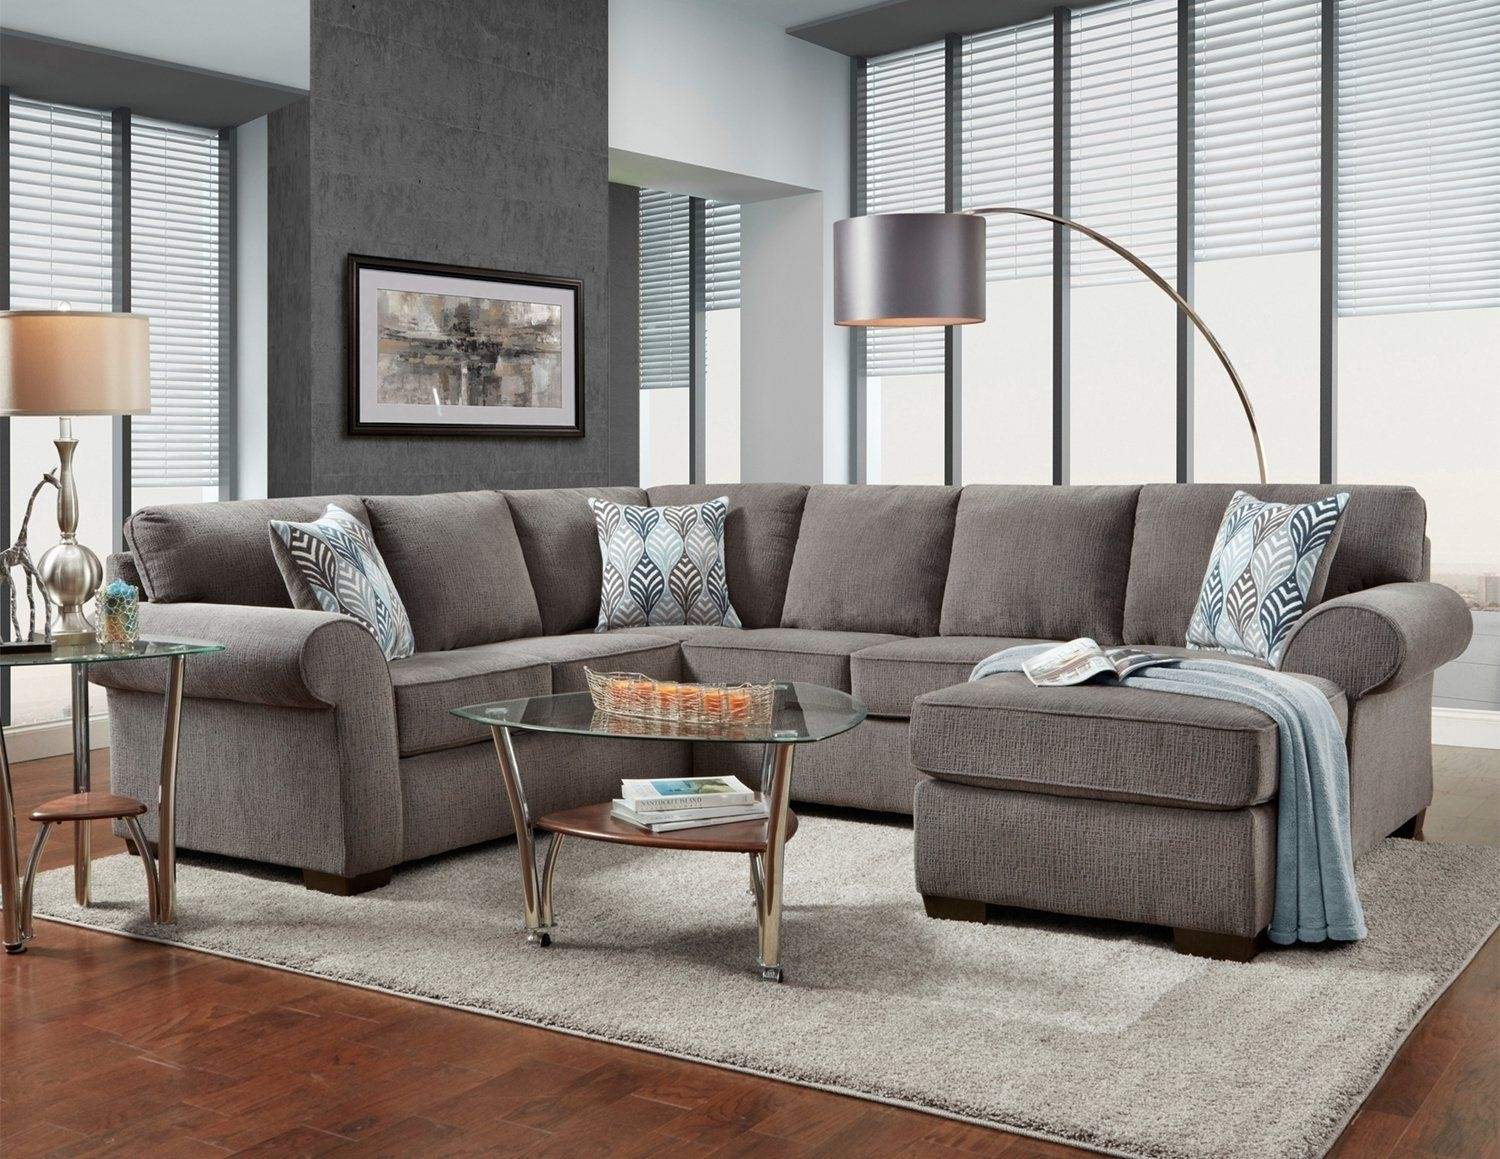 Affordable Furniture Charisma Smoke Sectional Sofa |  For The Home Inside Sierra Down 3 Piece Sectionals With Laf Chaise (Image 3 of 25)